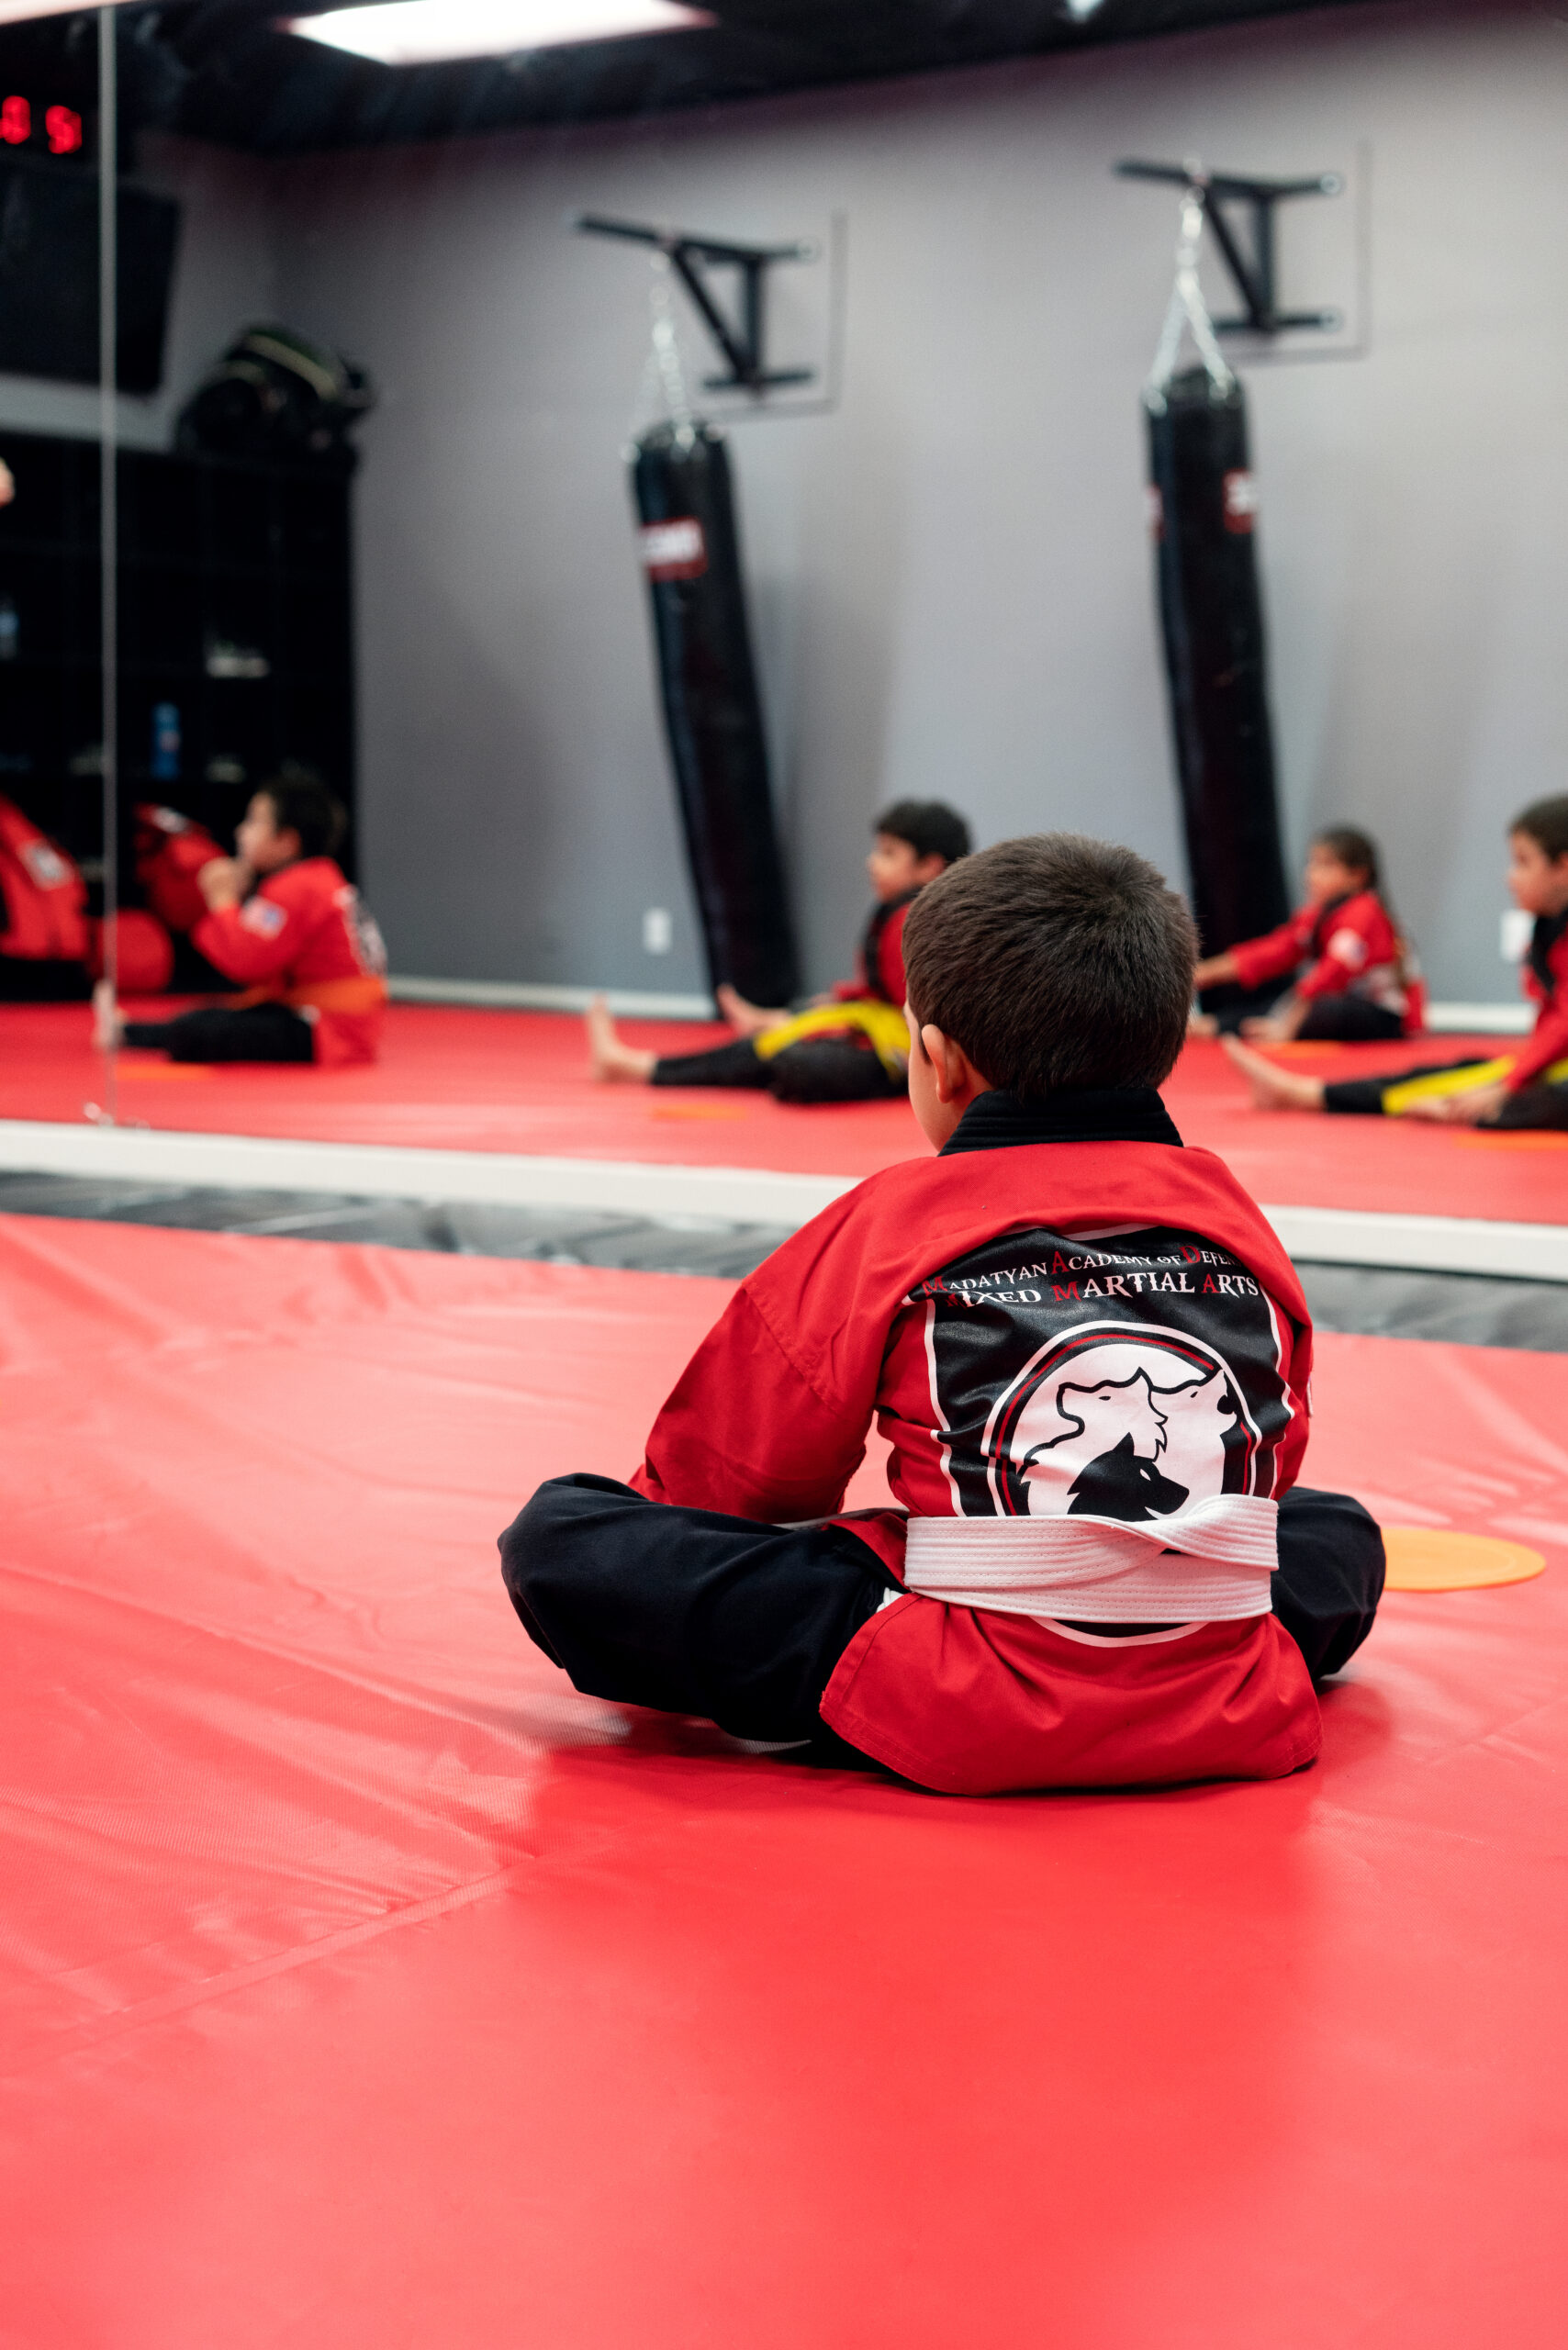 A student sits preparing to take part in mixed martial arts training.